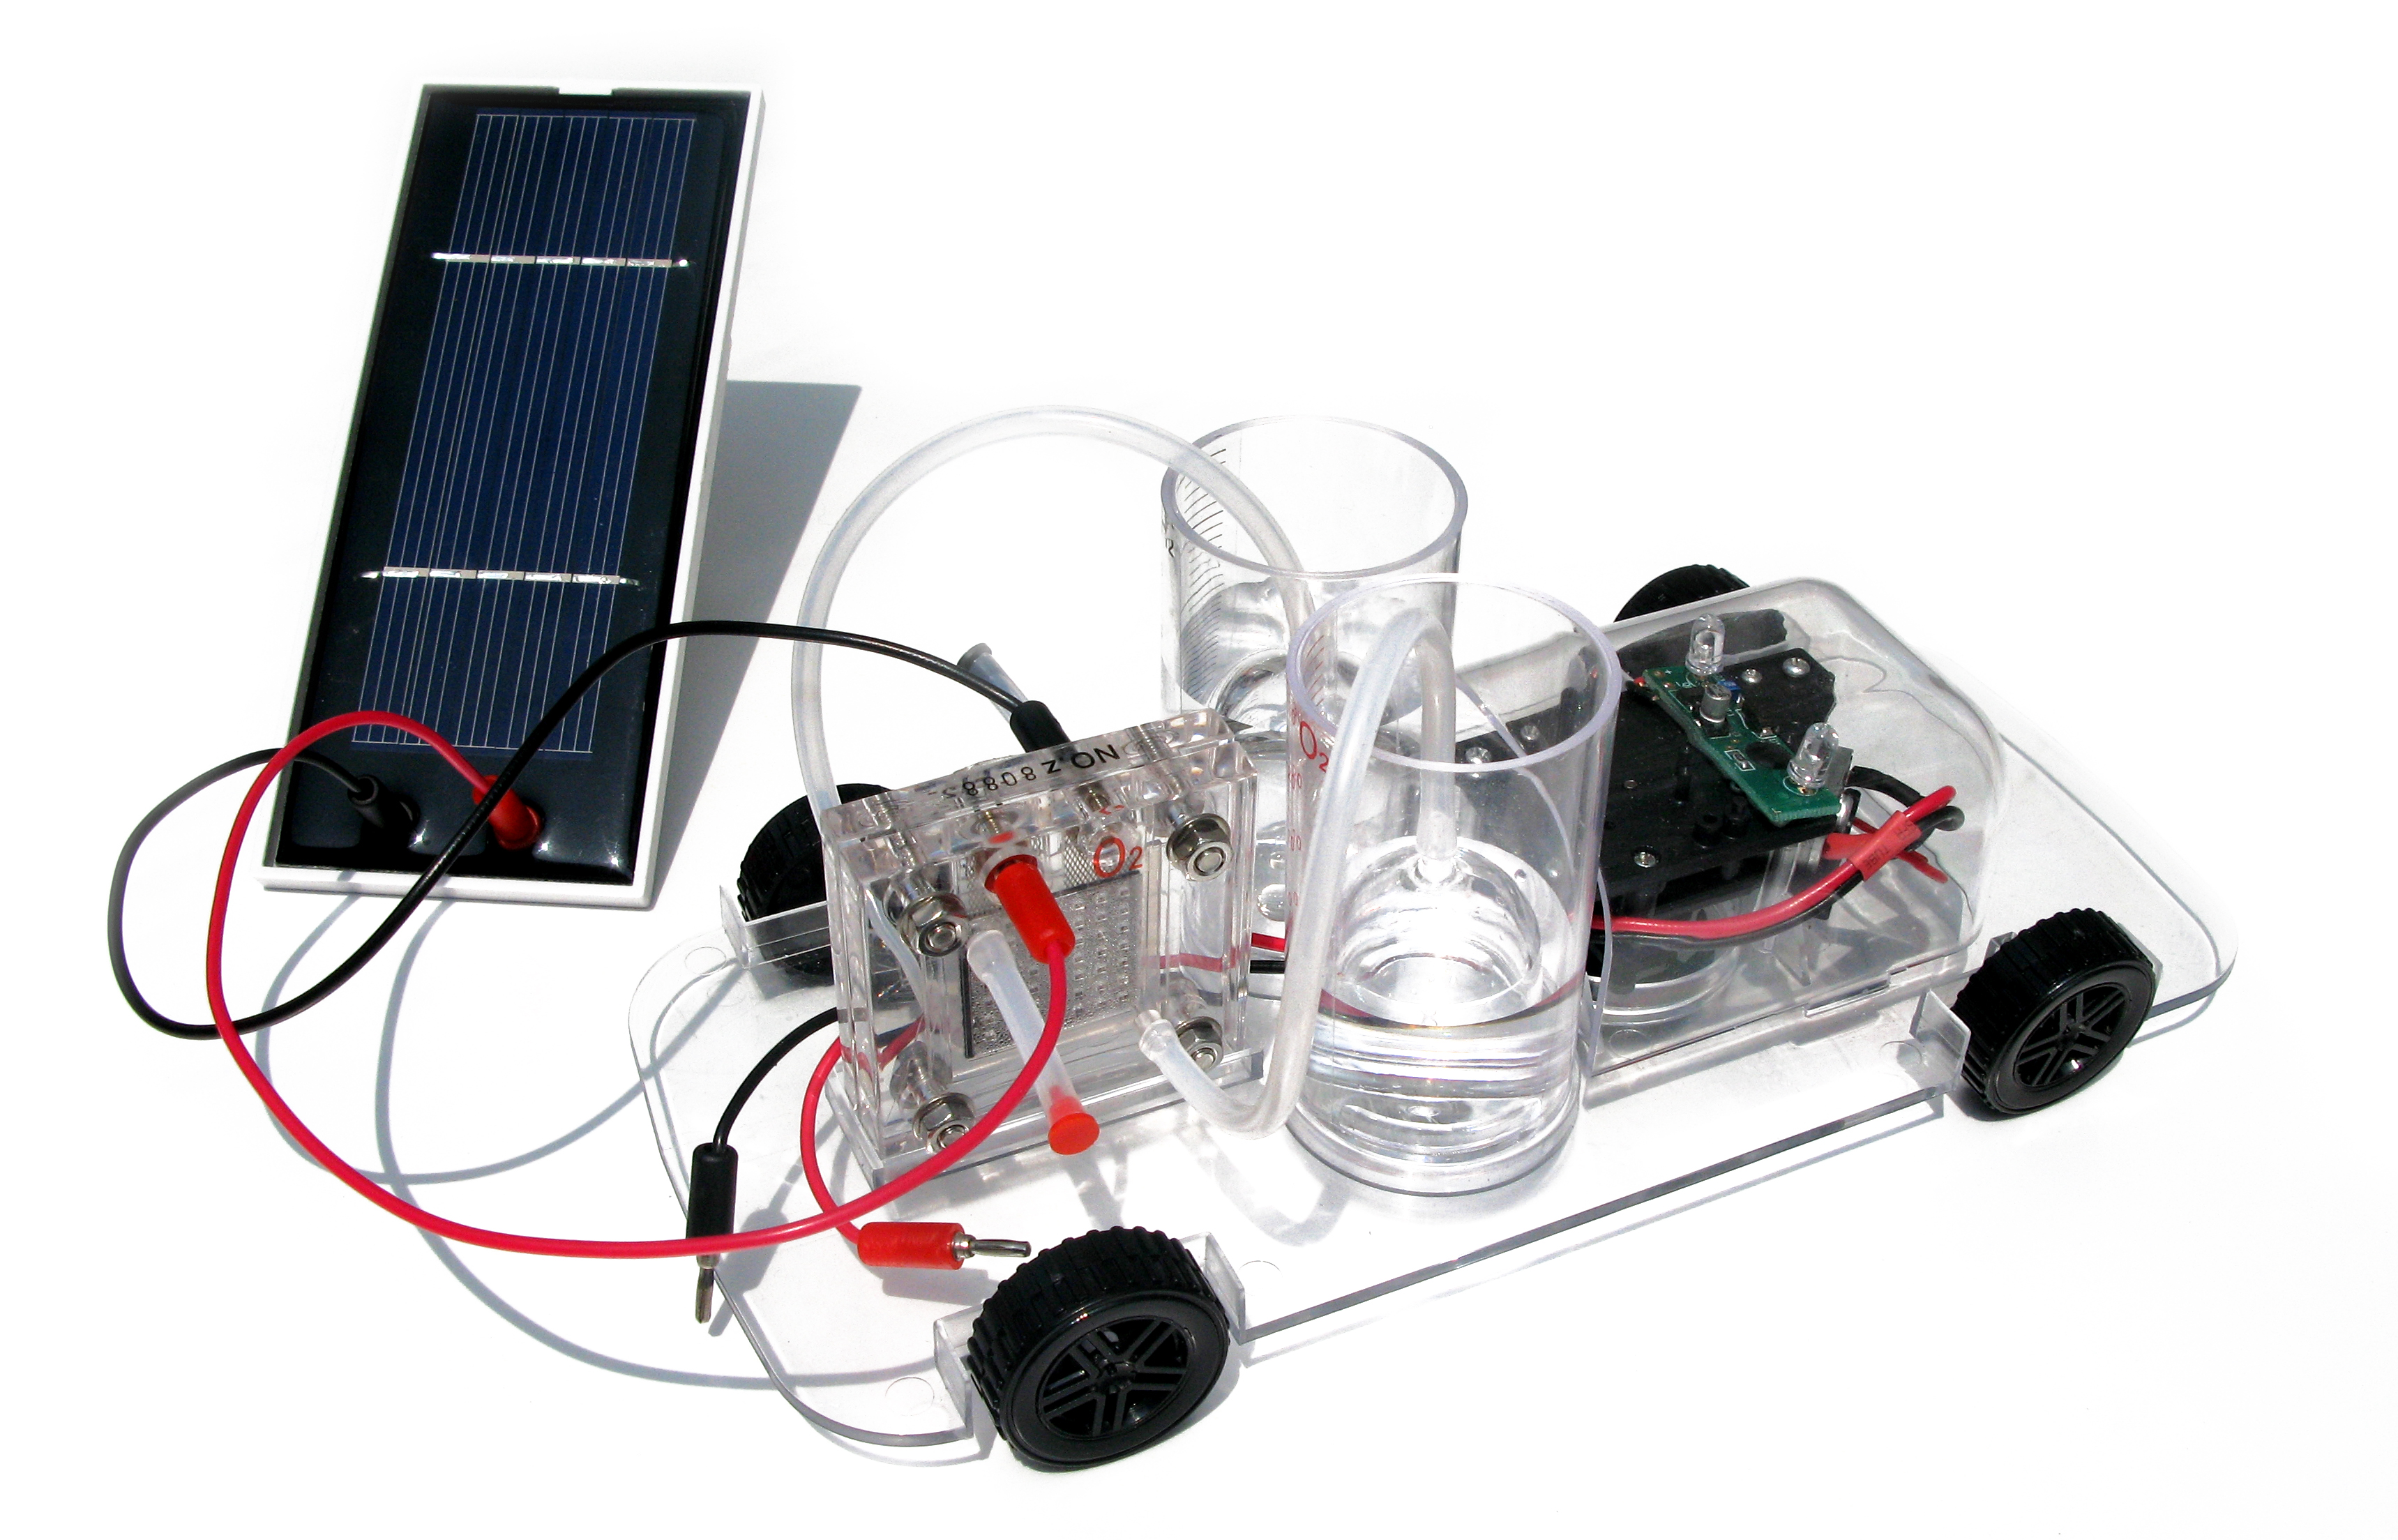 fuel cell car science kit. Black Bedroom Furniture Sets. Home Design Ideas